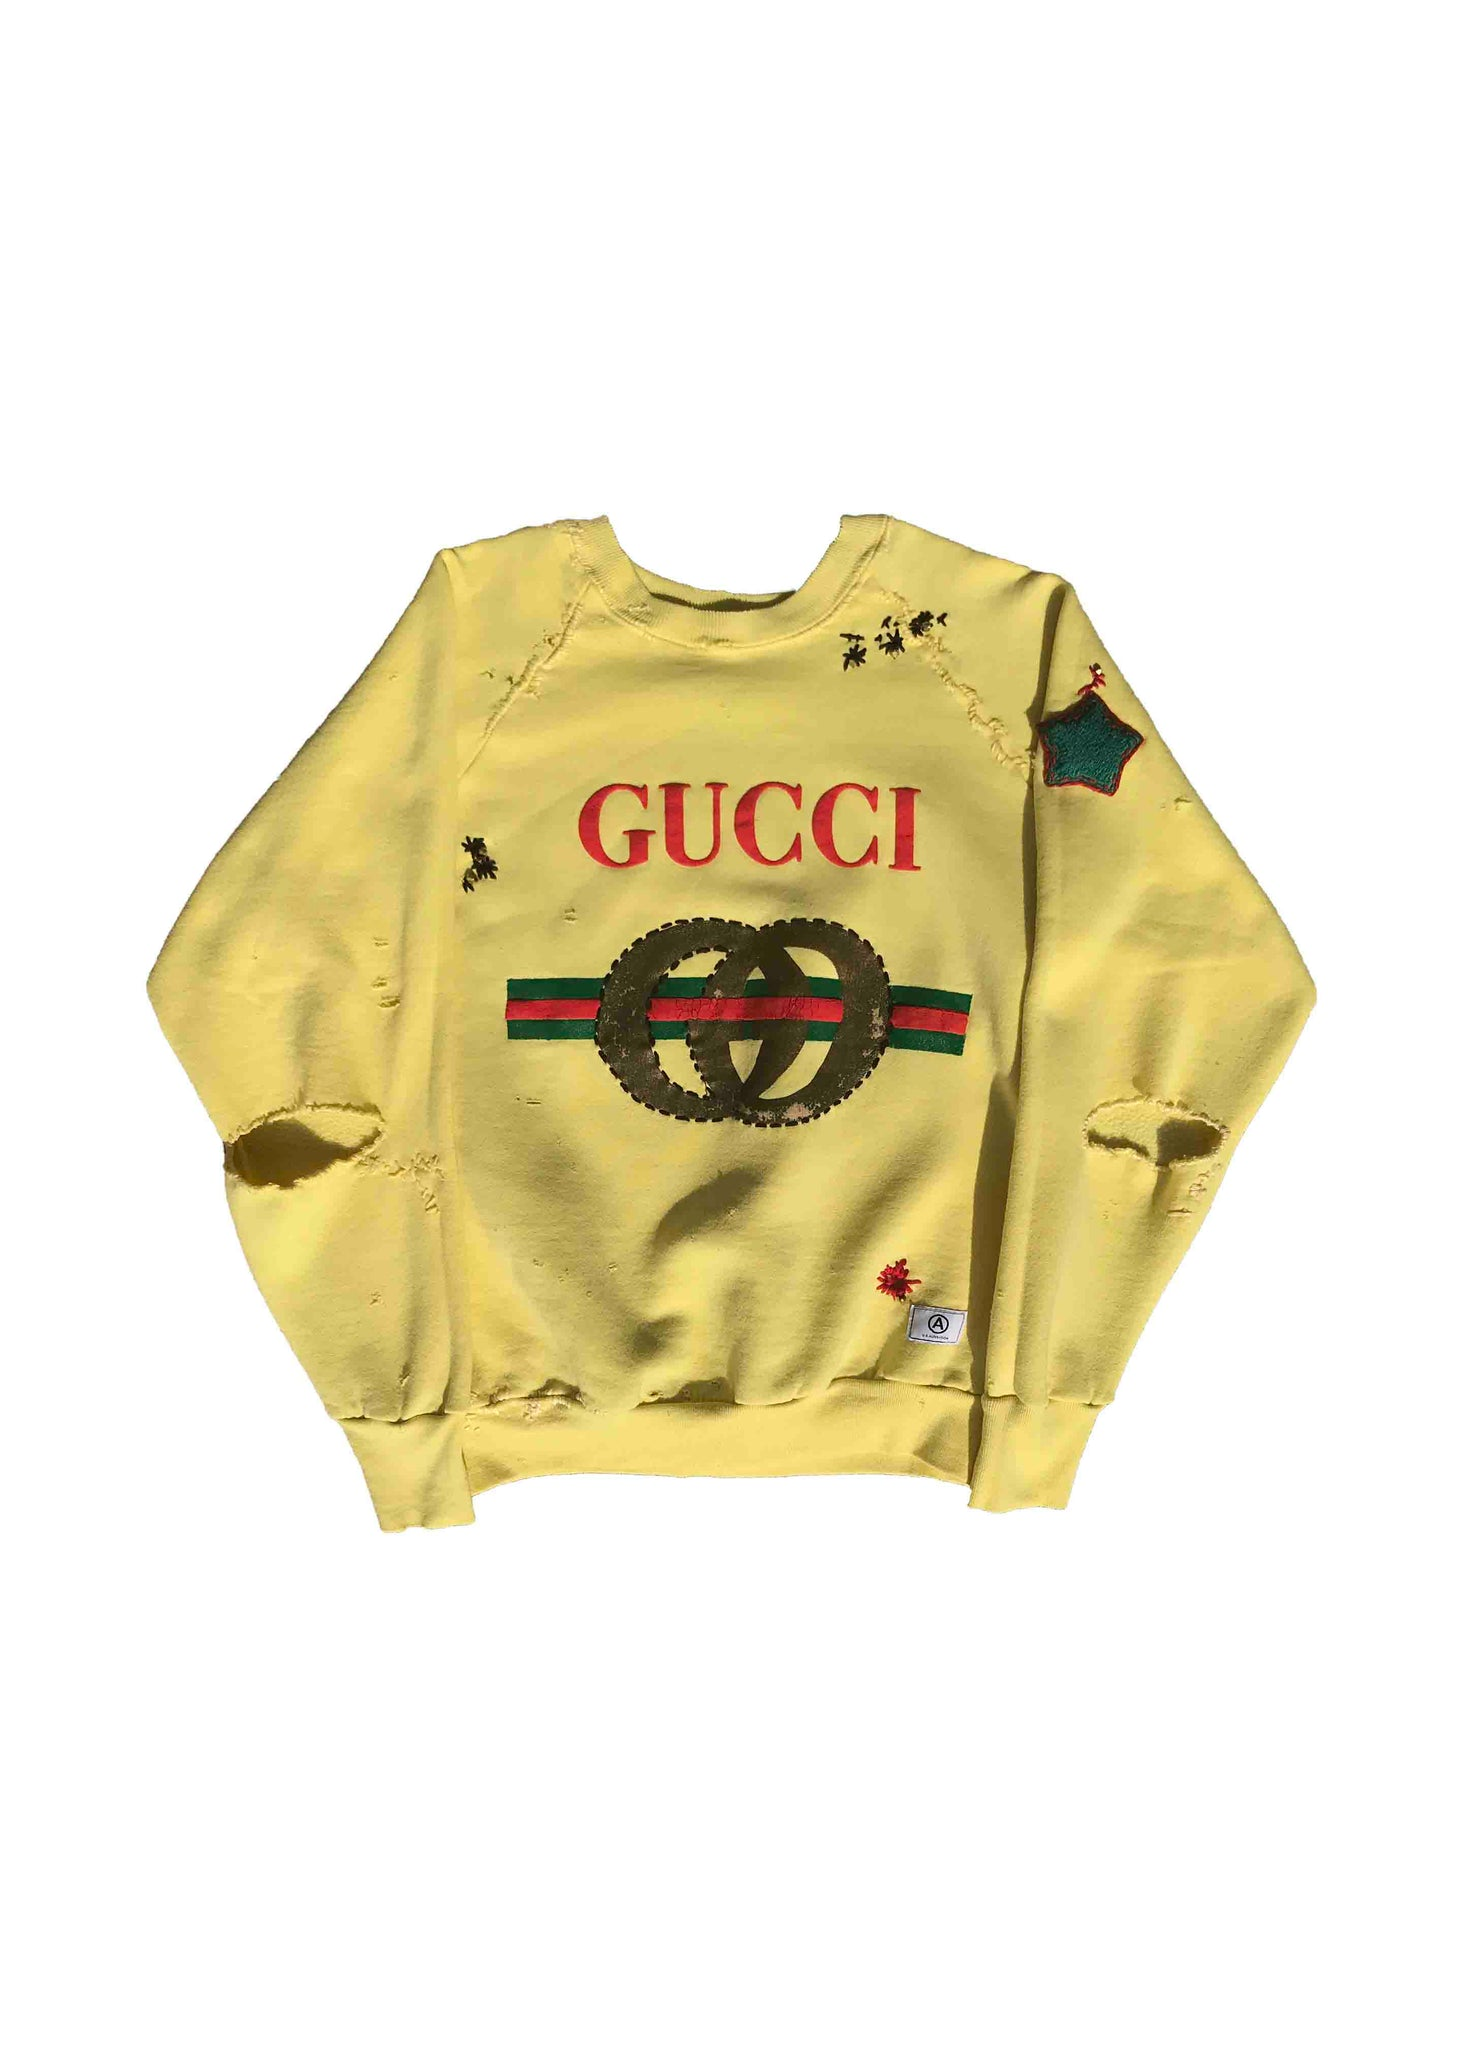 GUCCI // WITH HAND STITCHING DETAIL